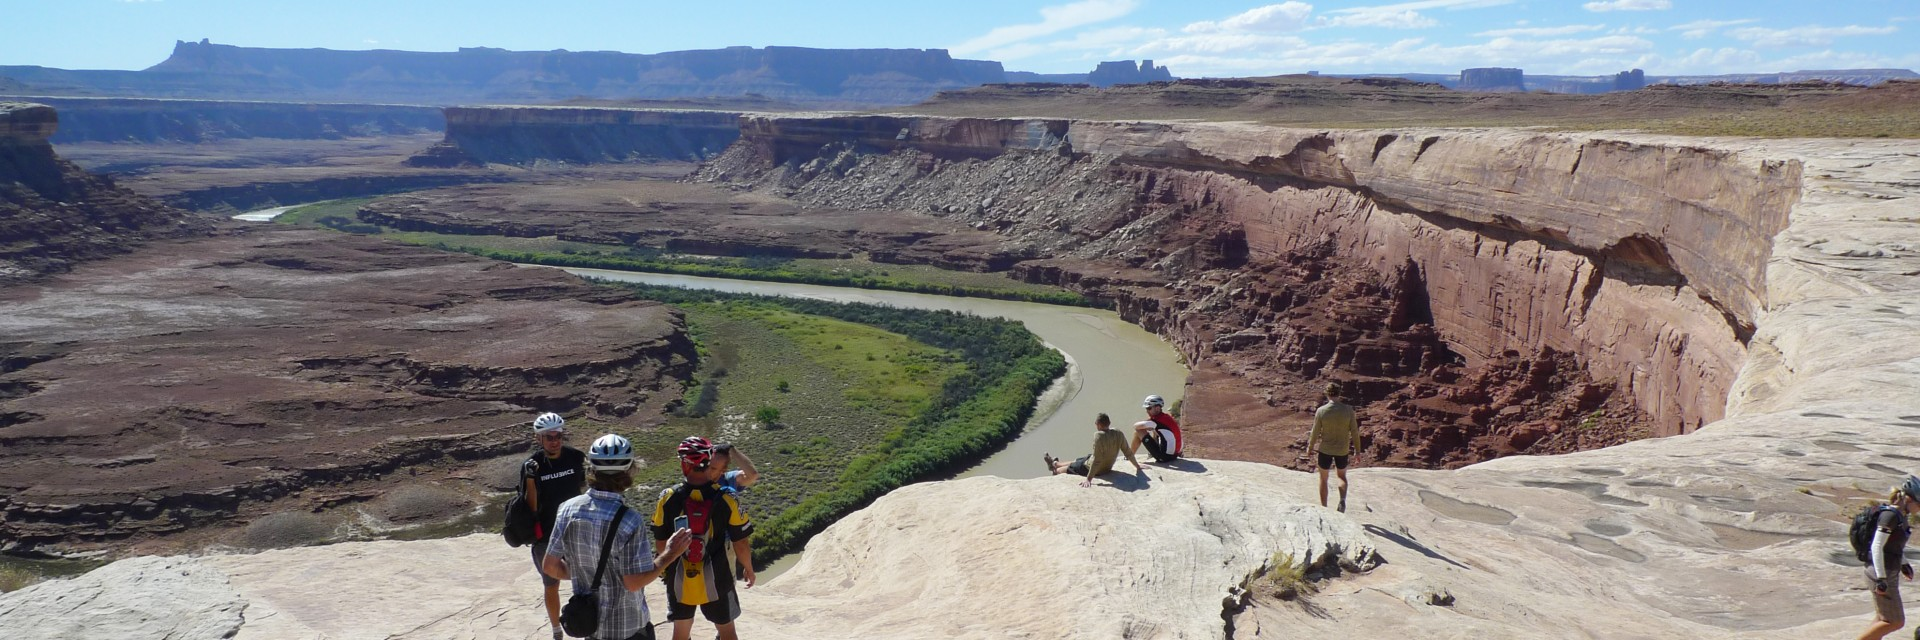 A guide shows mountain bikers the view down onto the Colorado River at Walking Rocks along the White Rim Trail